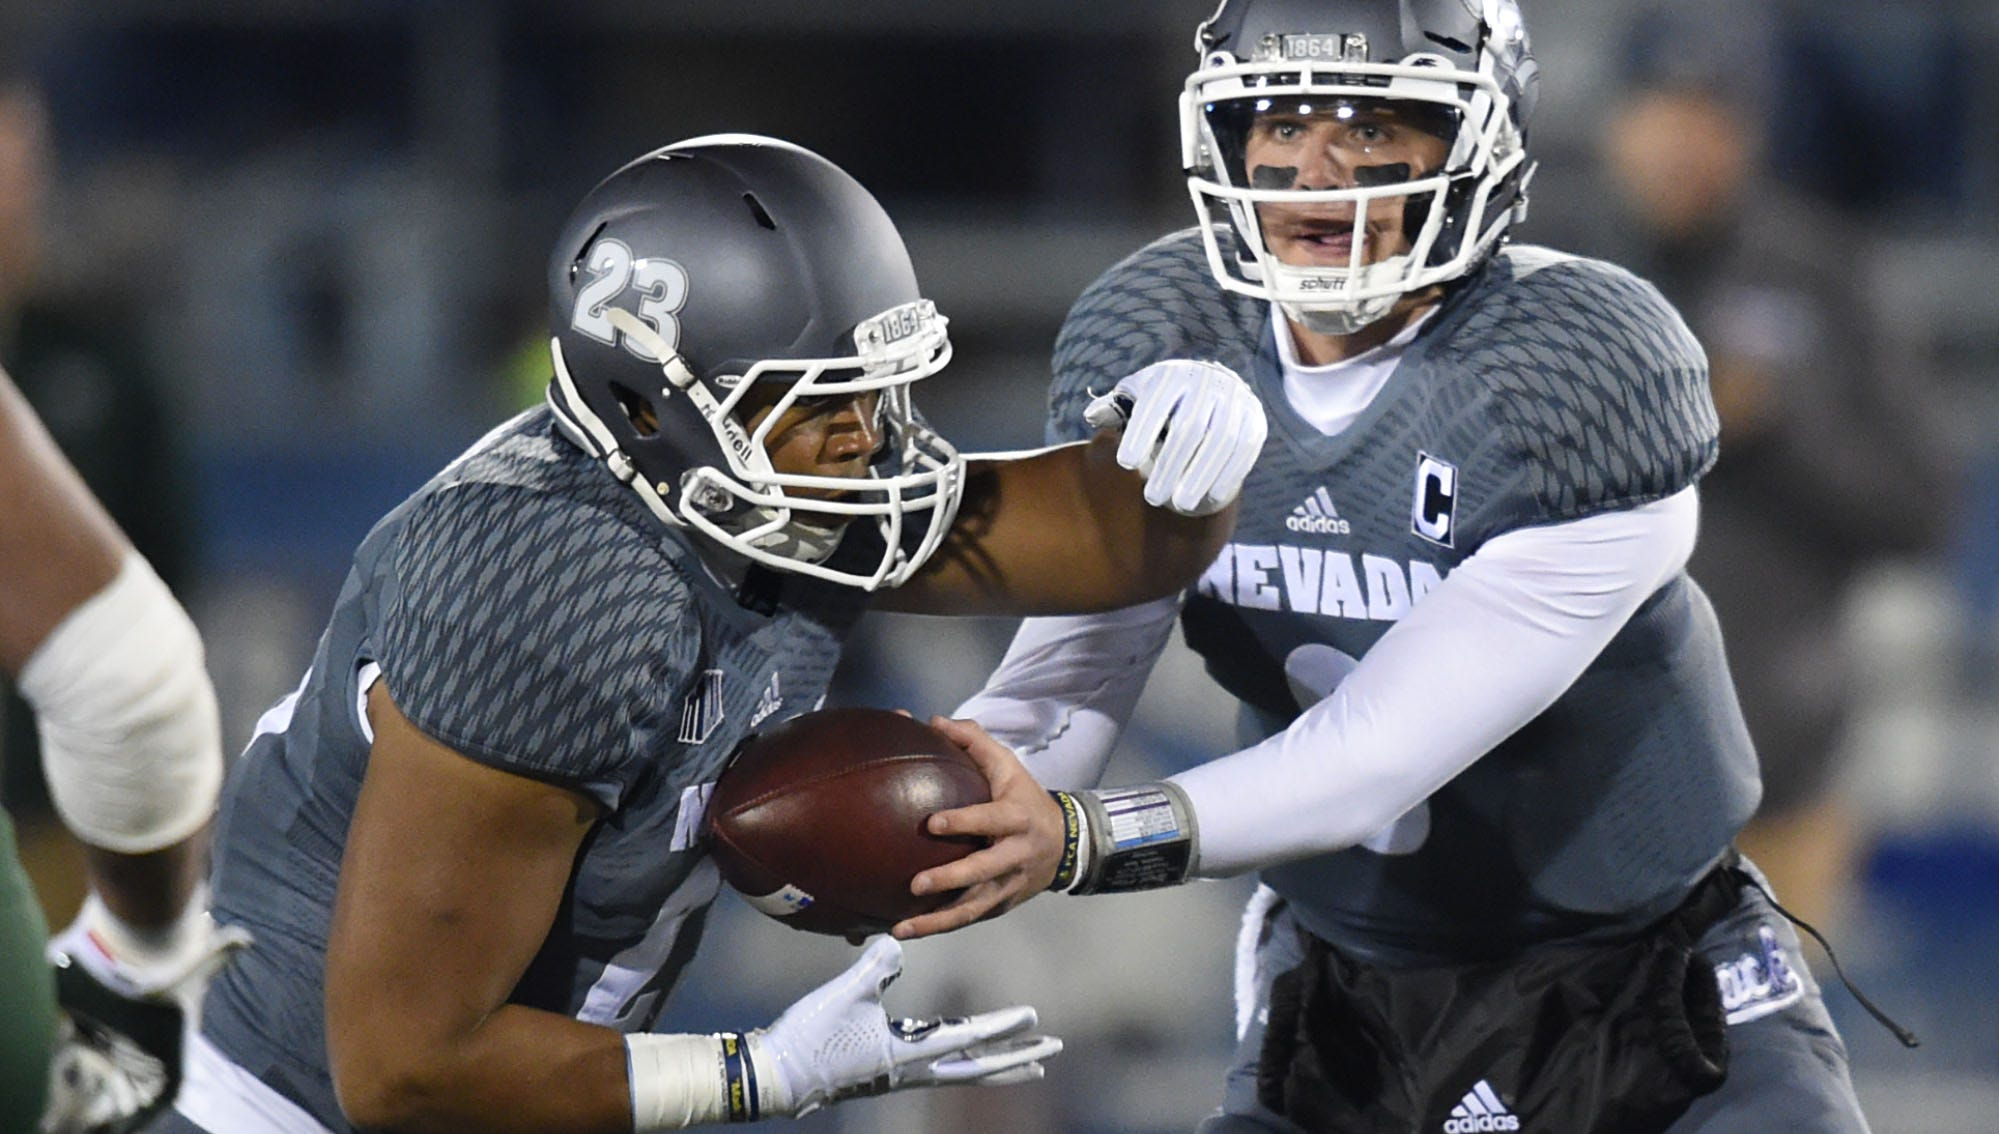 Images from the Nevada football game against Colorado State on Senior Night at Mackay Stadium on Saturday Nov. 10, 2018.